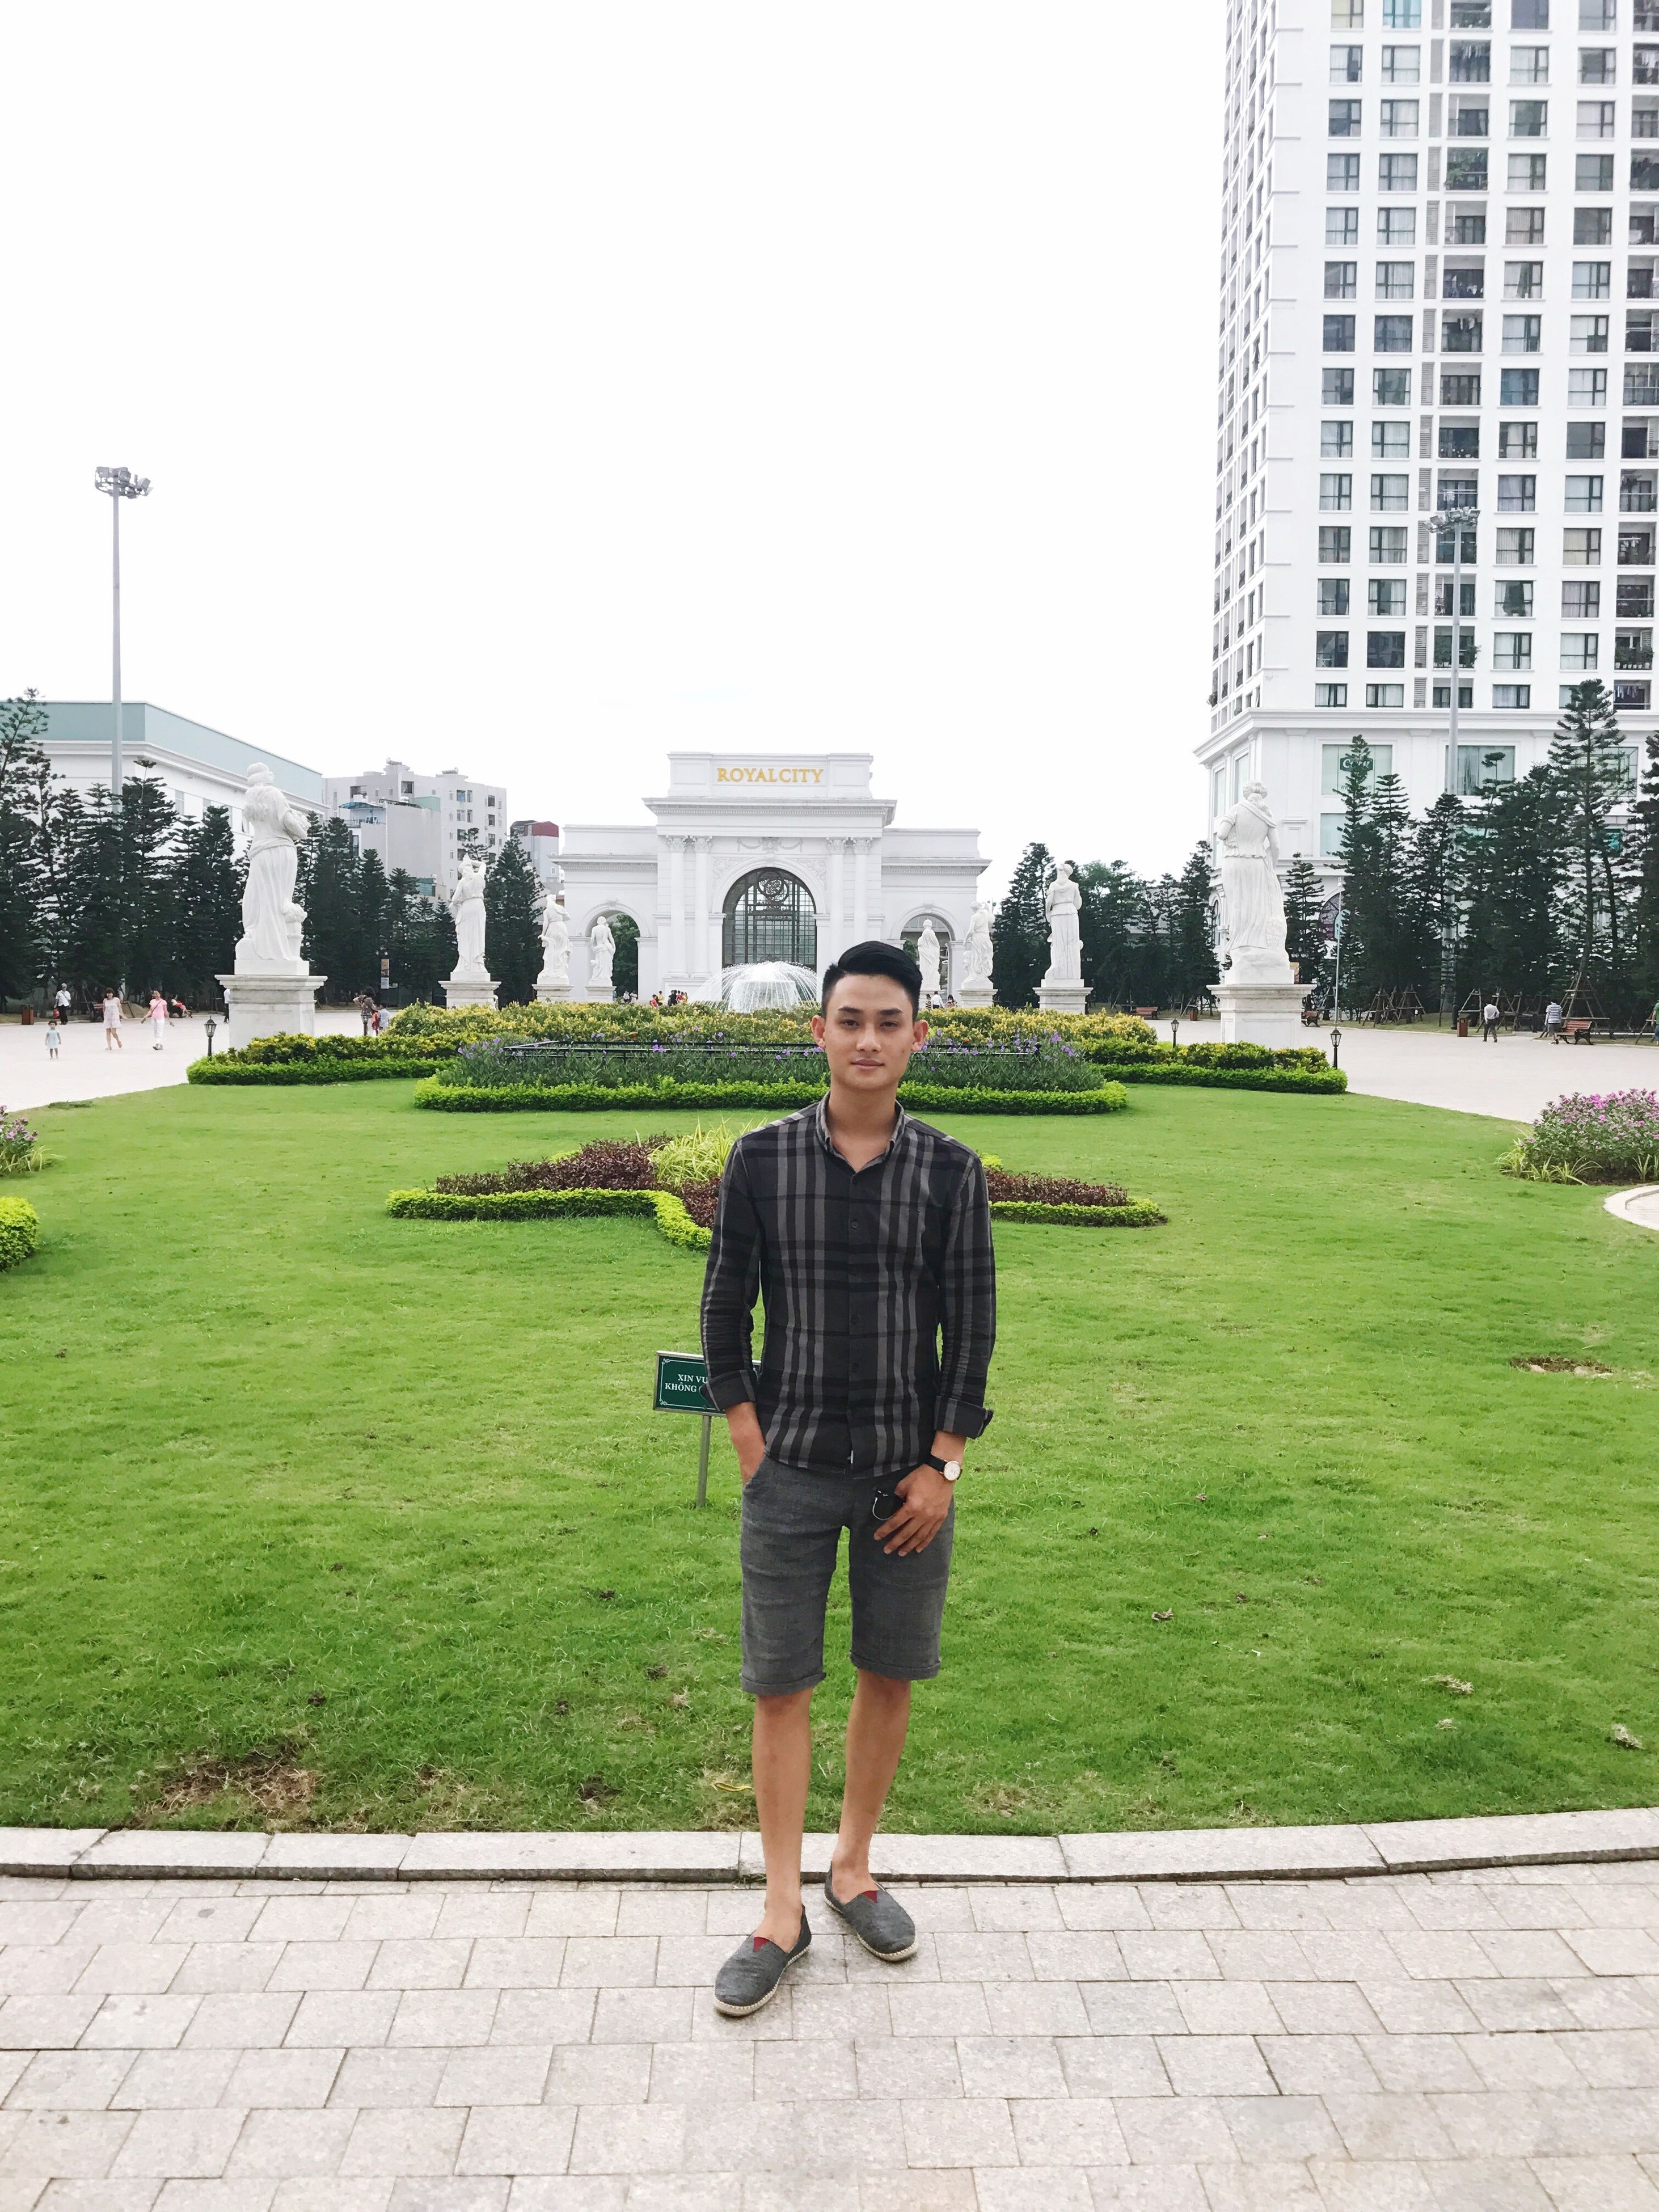 architecture, building exterior, built structure, real people, outdoors, day, young adult, casual clothing, full length, front view, tourism, leisure activity, grass, lawn, young men, tree, lifestyles, travel destinations, standing, looking at camera, green color, young women, portrait, one person, growth, clear sky, city, smiling, nature